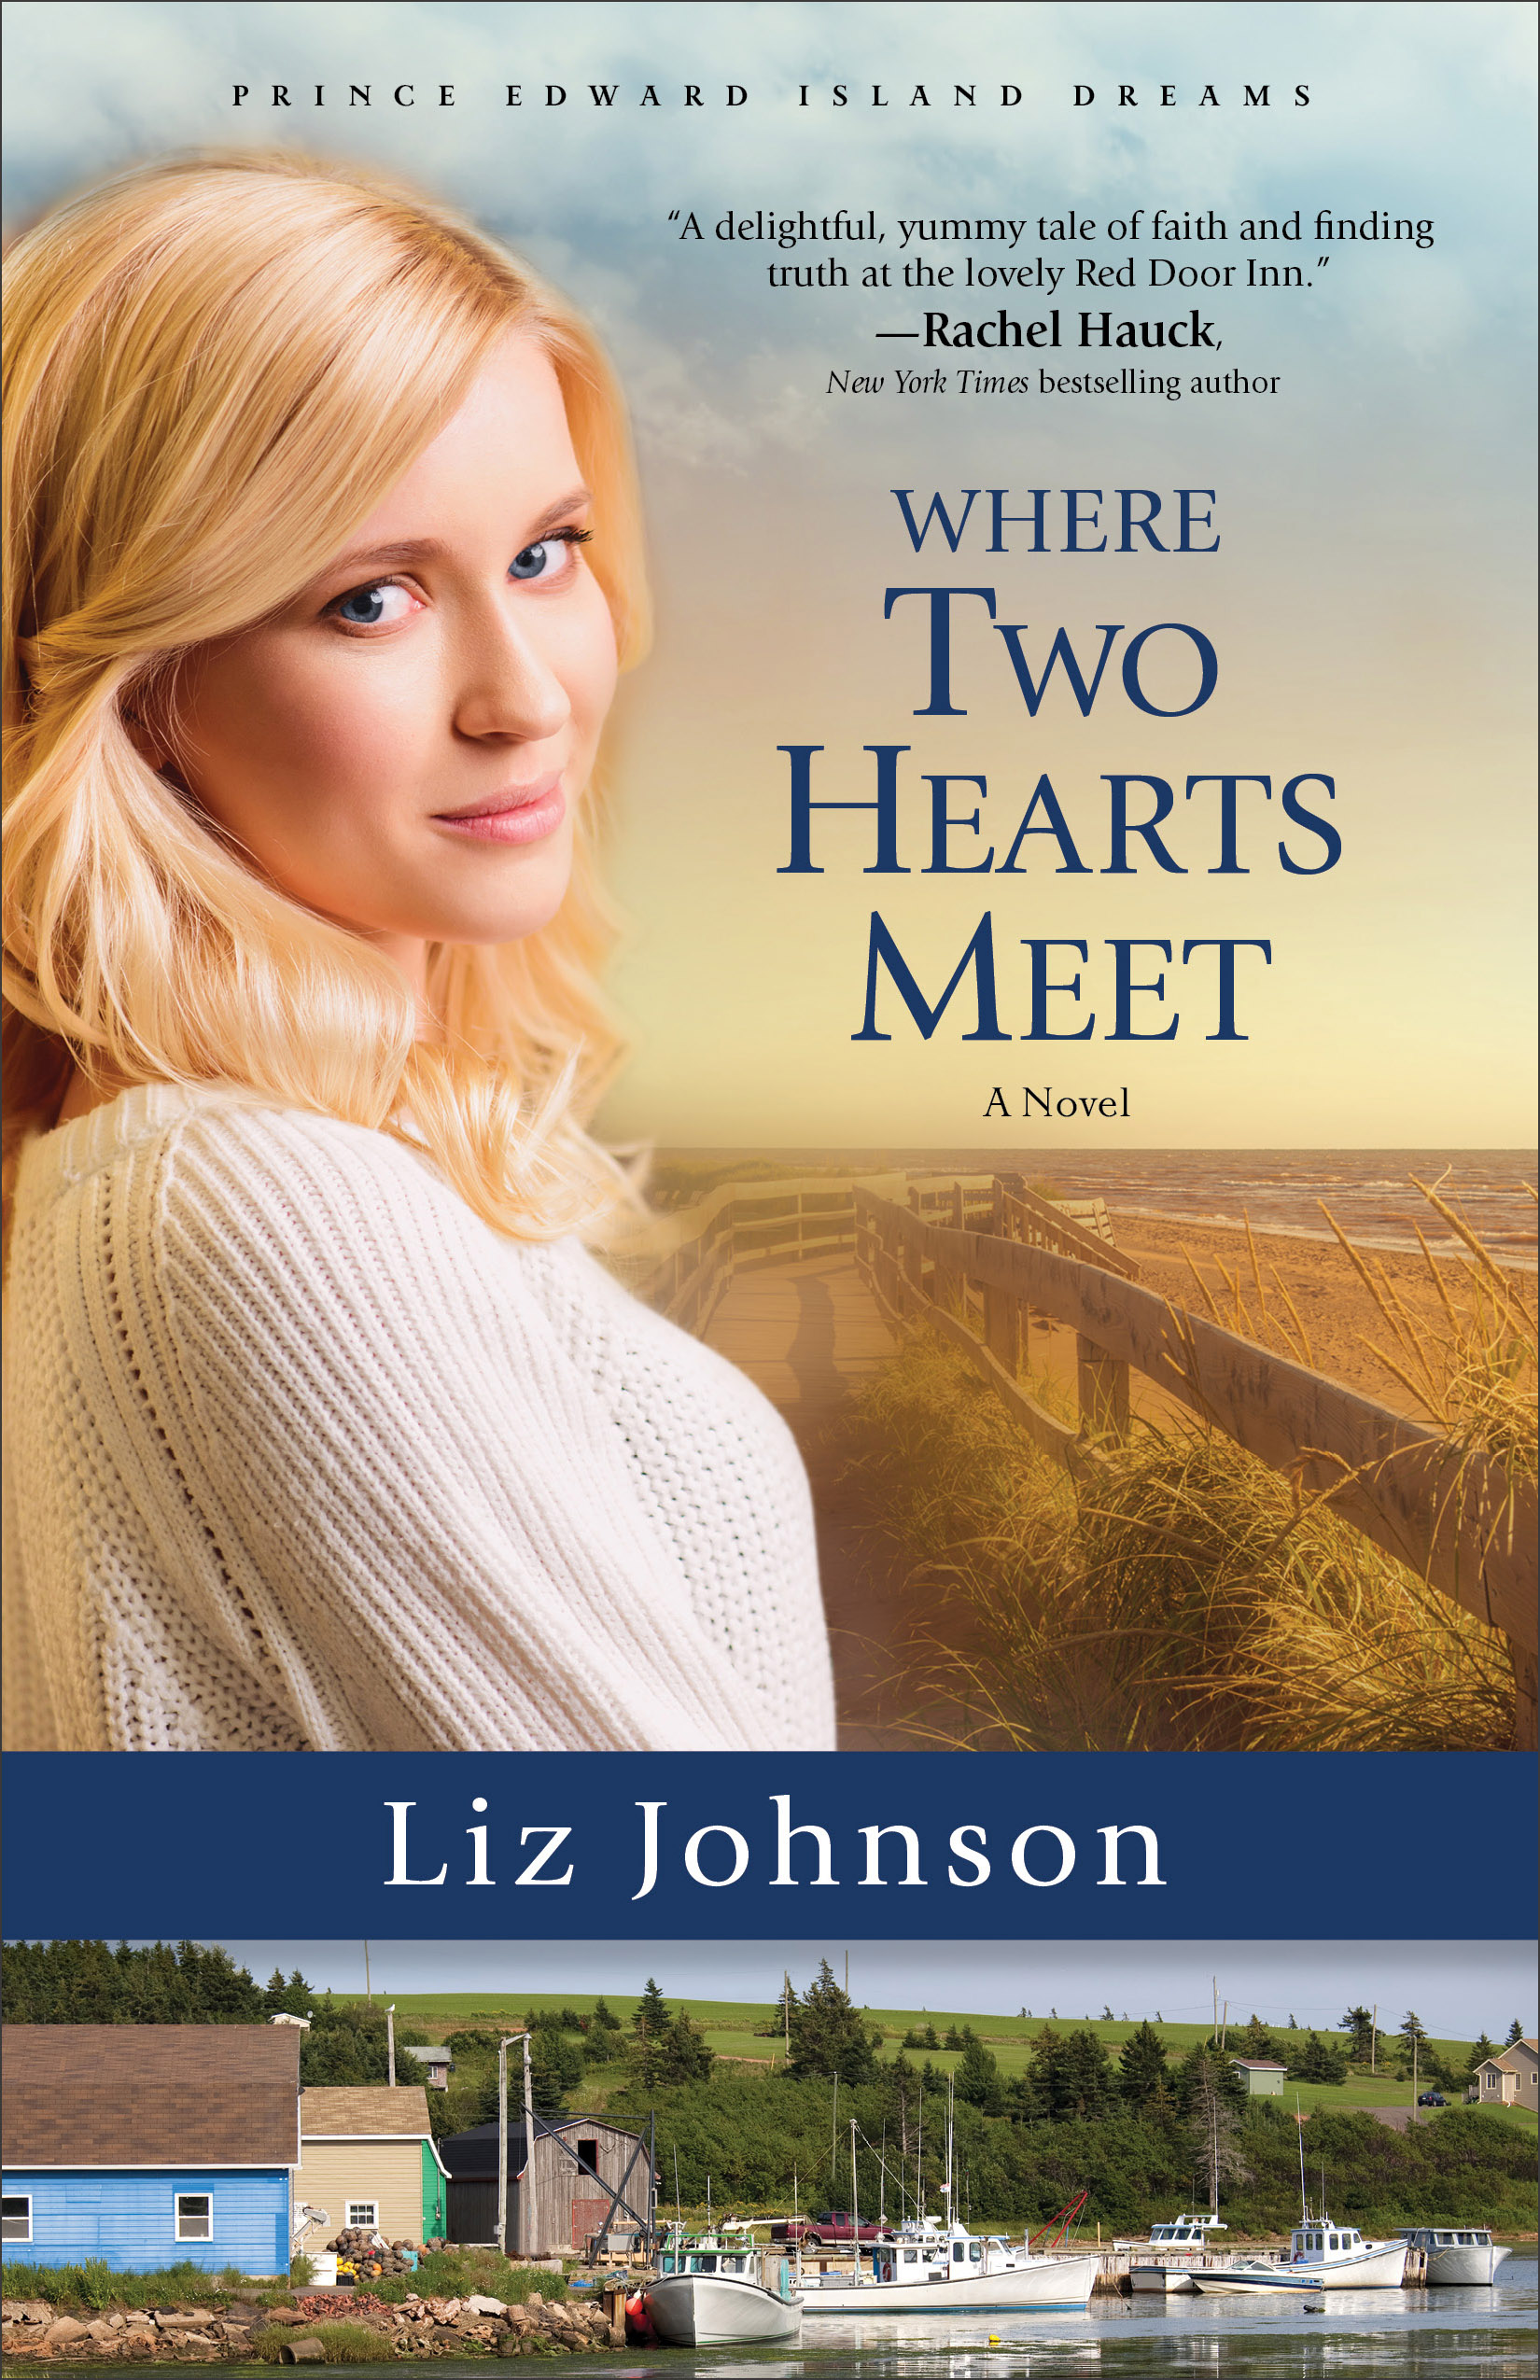 Book review of Where Two Hearts Meet by Liz Johnson (Revell) by @papertapepins